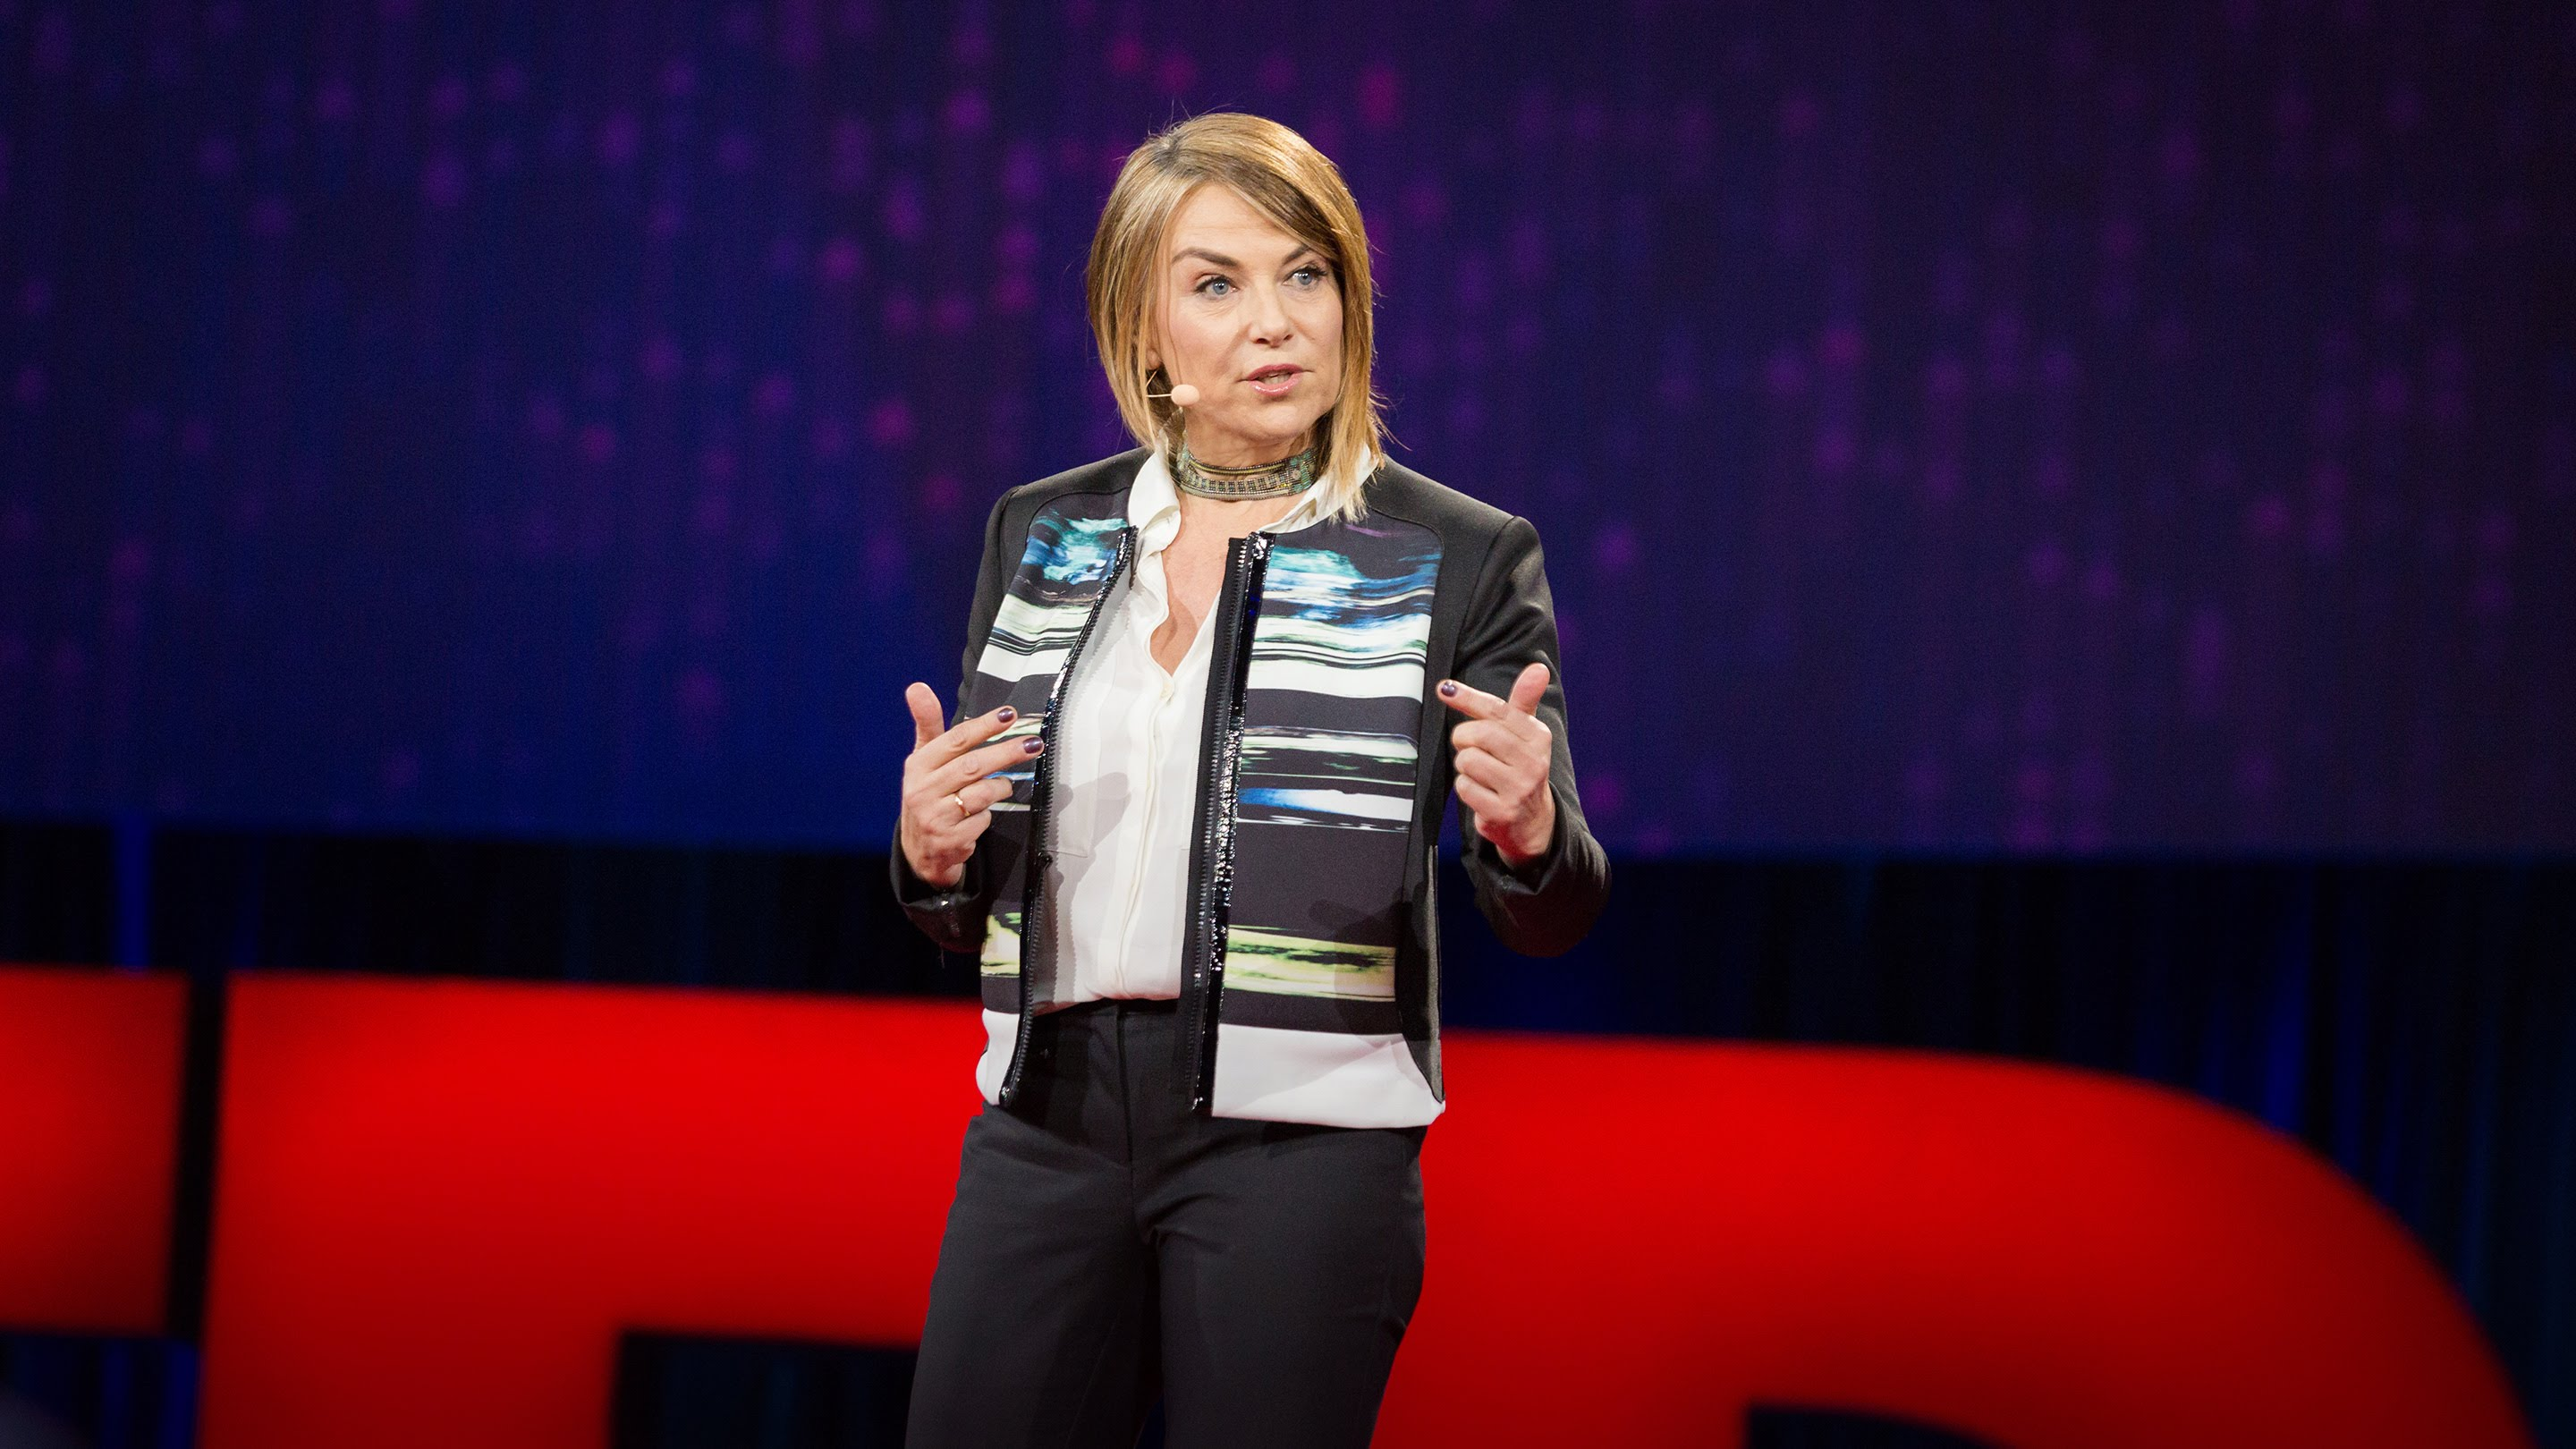 「Esther Perel:出軌這件事... 獻給所有愛過的人」- Rethinking Infidelity... A Talk for Anyone Who Has Ever Loved